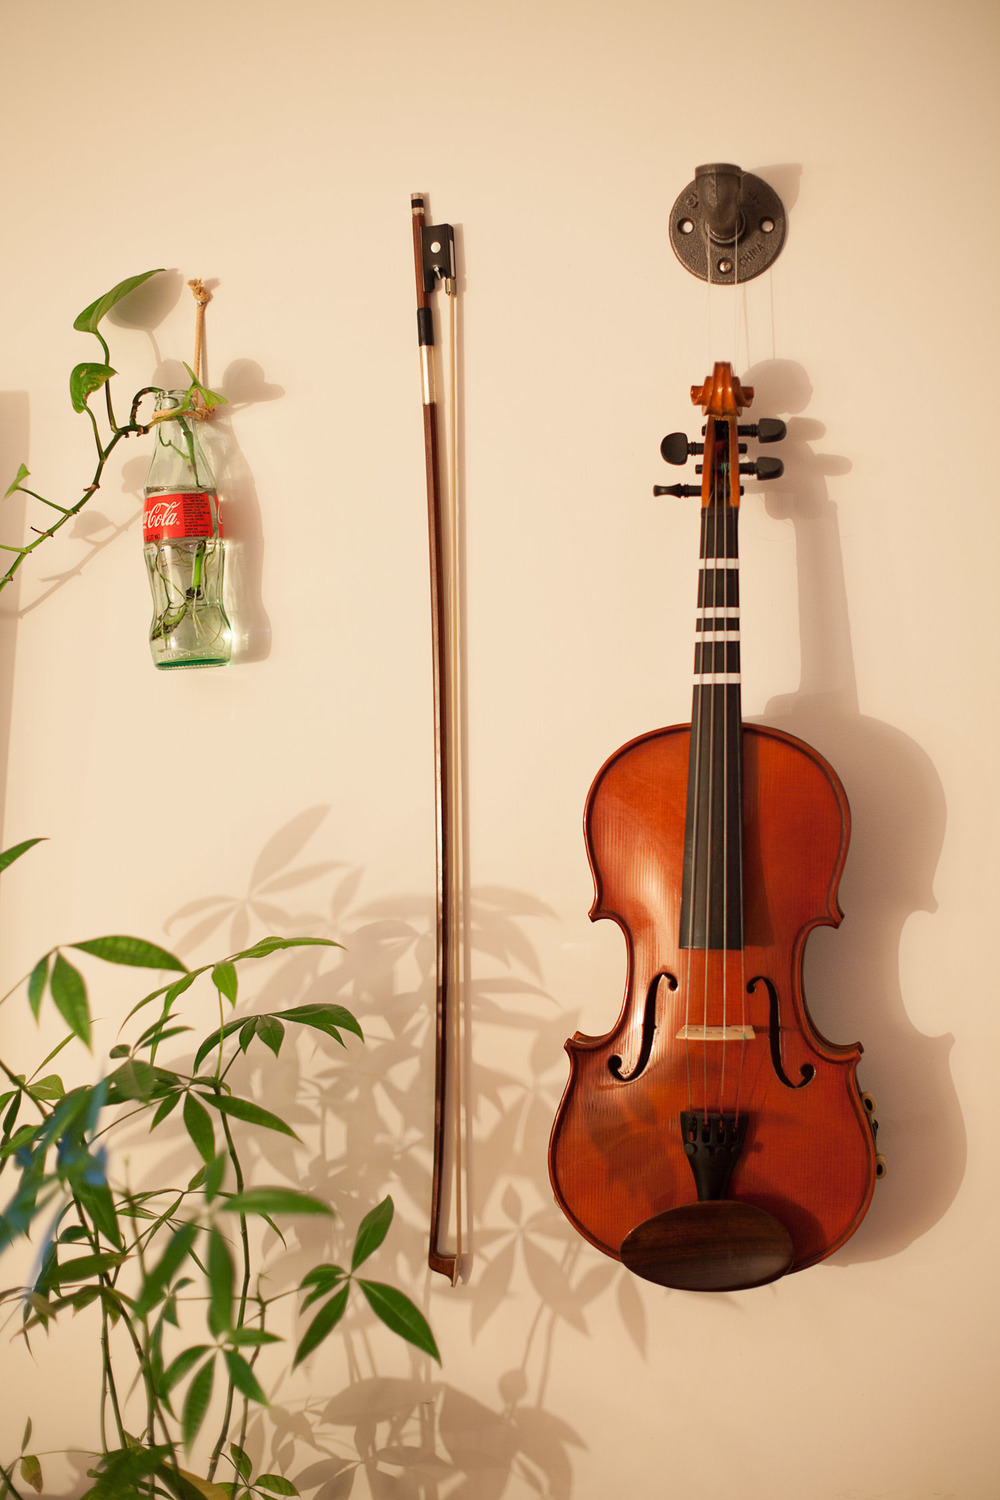 Untitled (Violin)